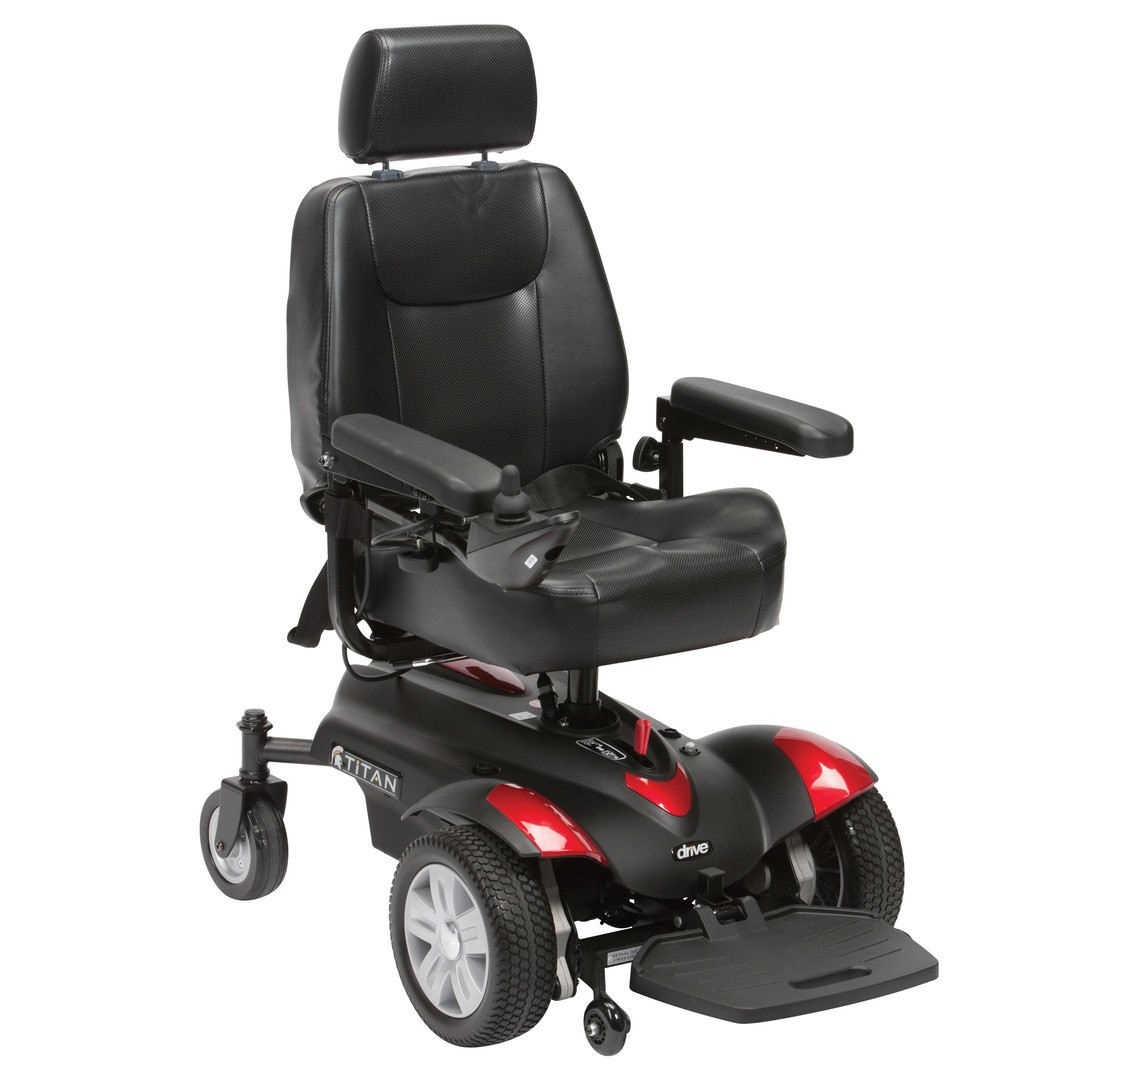 Electric Chair Mobility Titan Powerchair Electric Wheelchair At Low Prices Uk